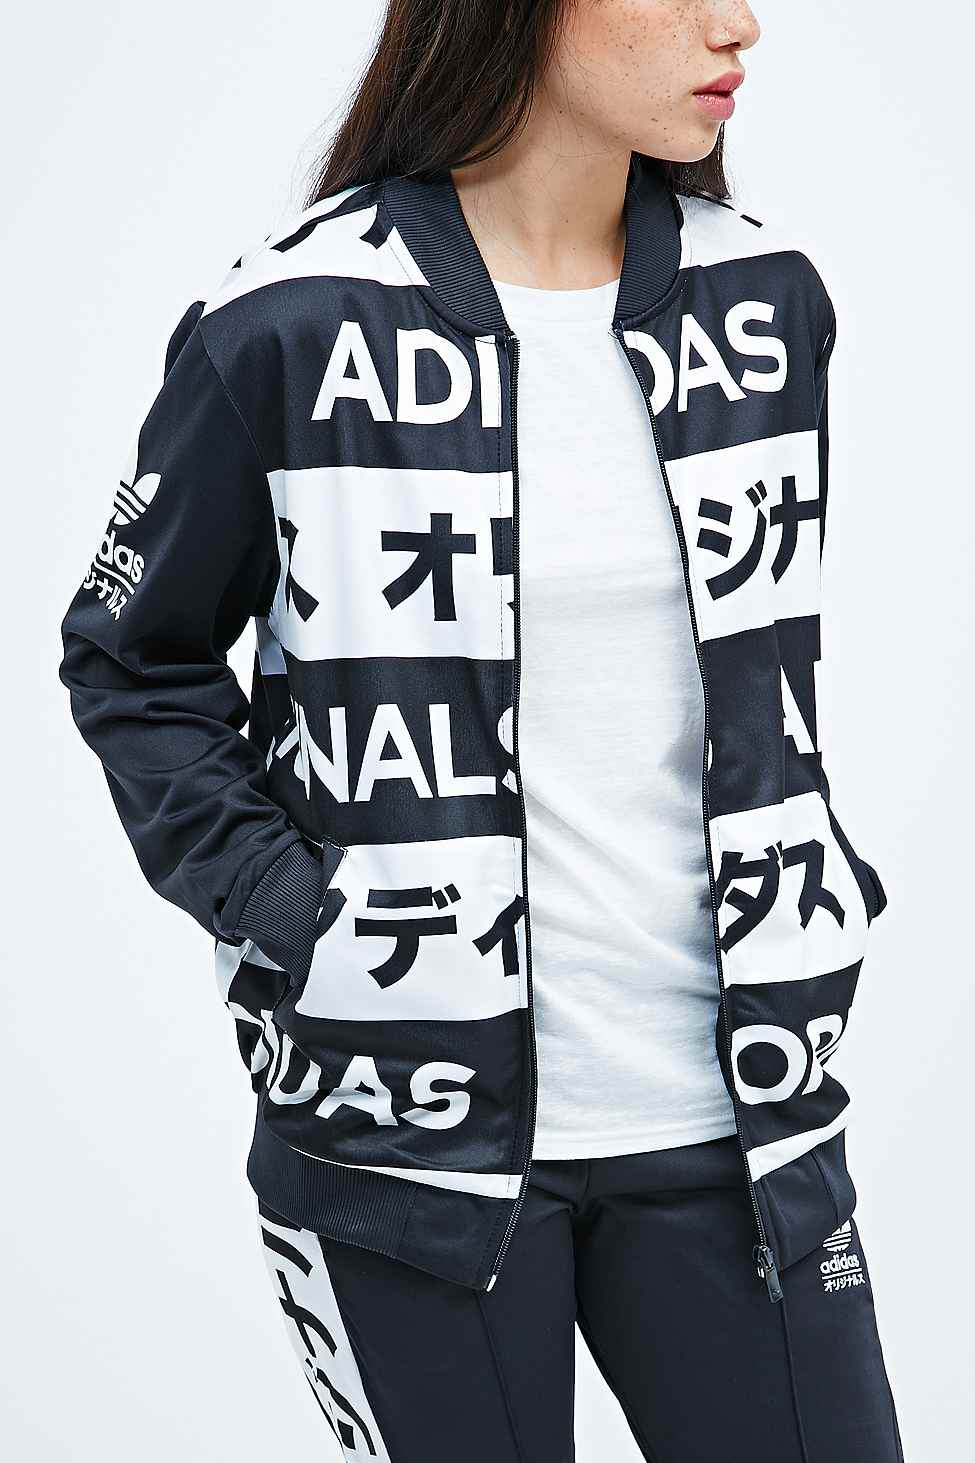 Lyst Top In Adidas White Black And Tracksuit Typo q0BwxBH4